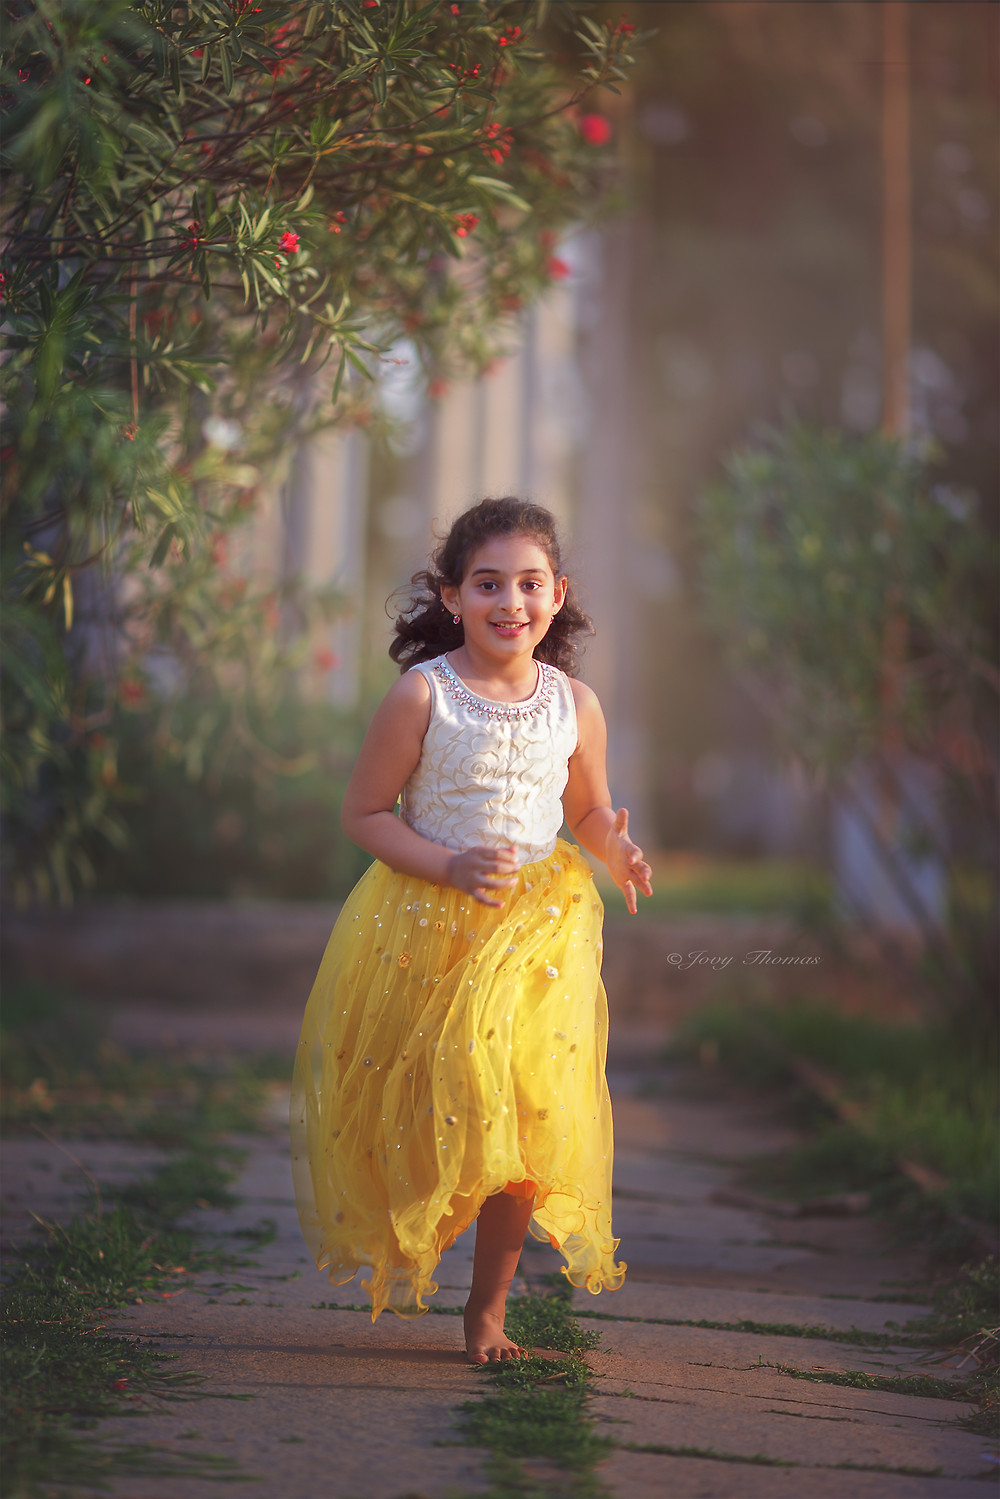 Kids photo session Hyderabad, By: Jovy Thomas